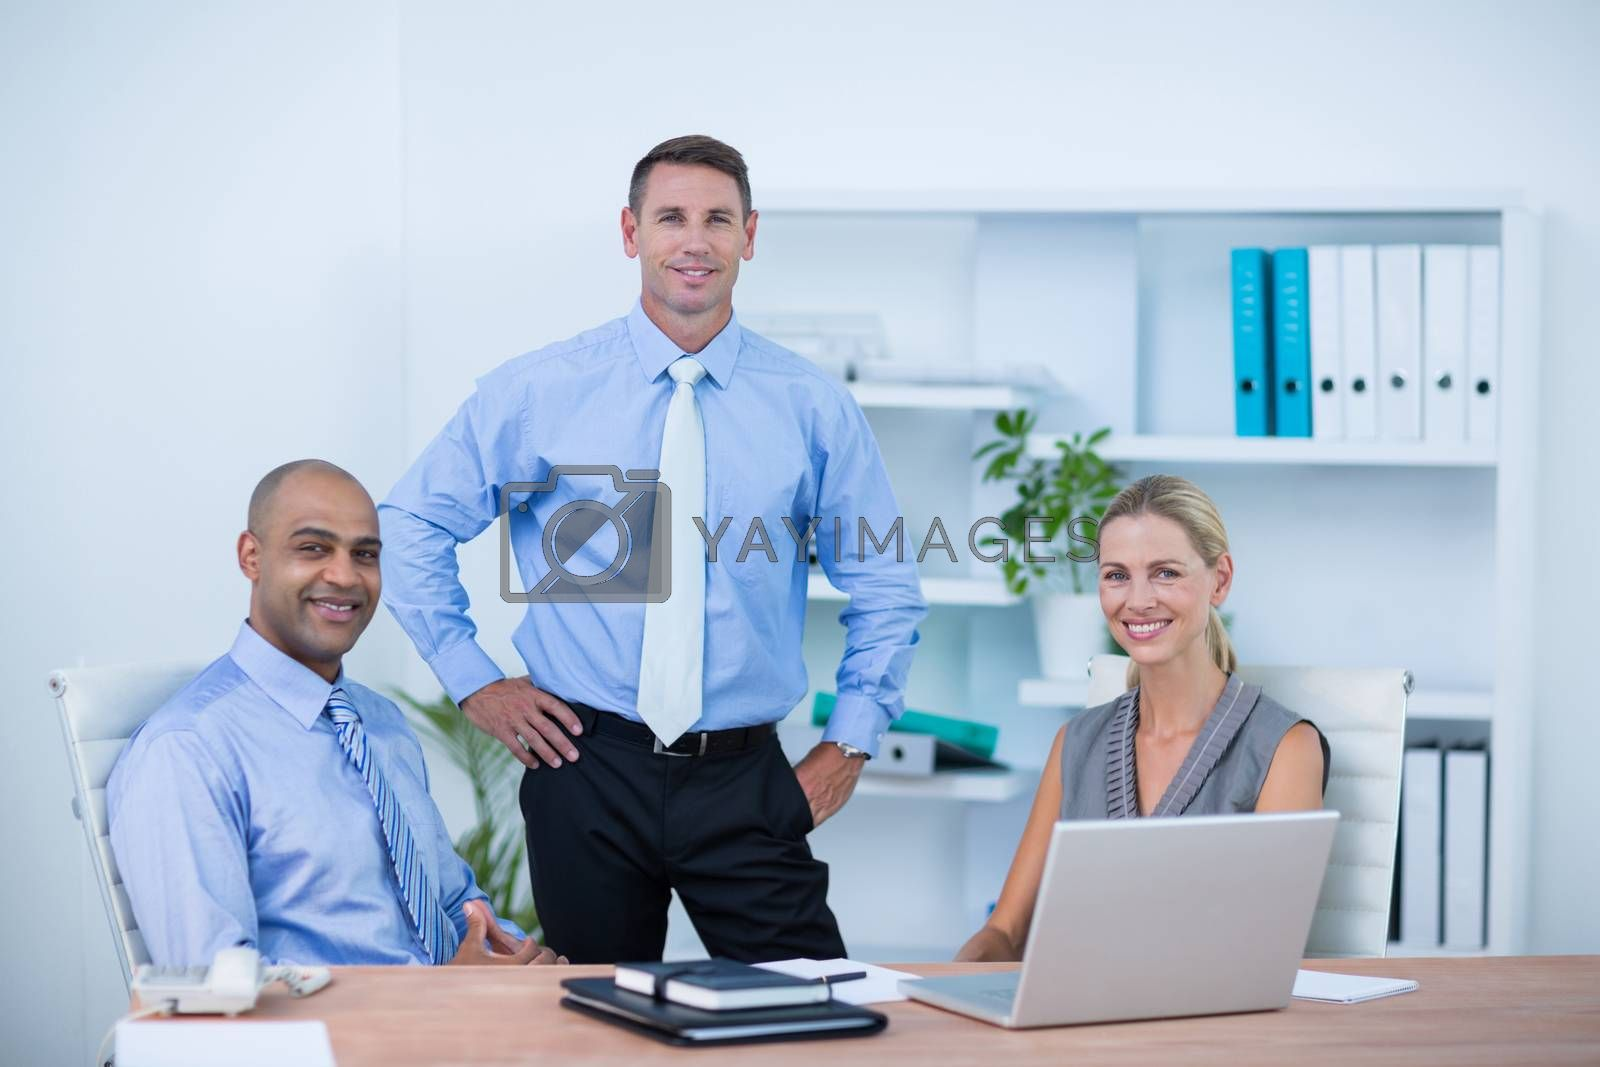 Royalty free image of Business partners smiling at camera by Wavebreakmedia